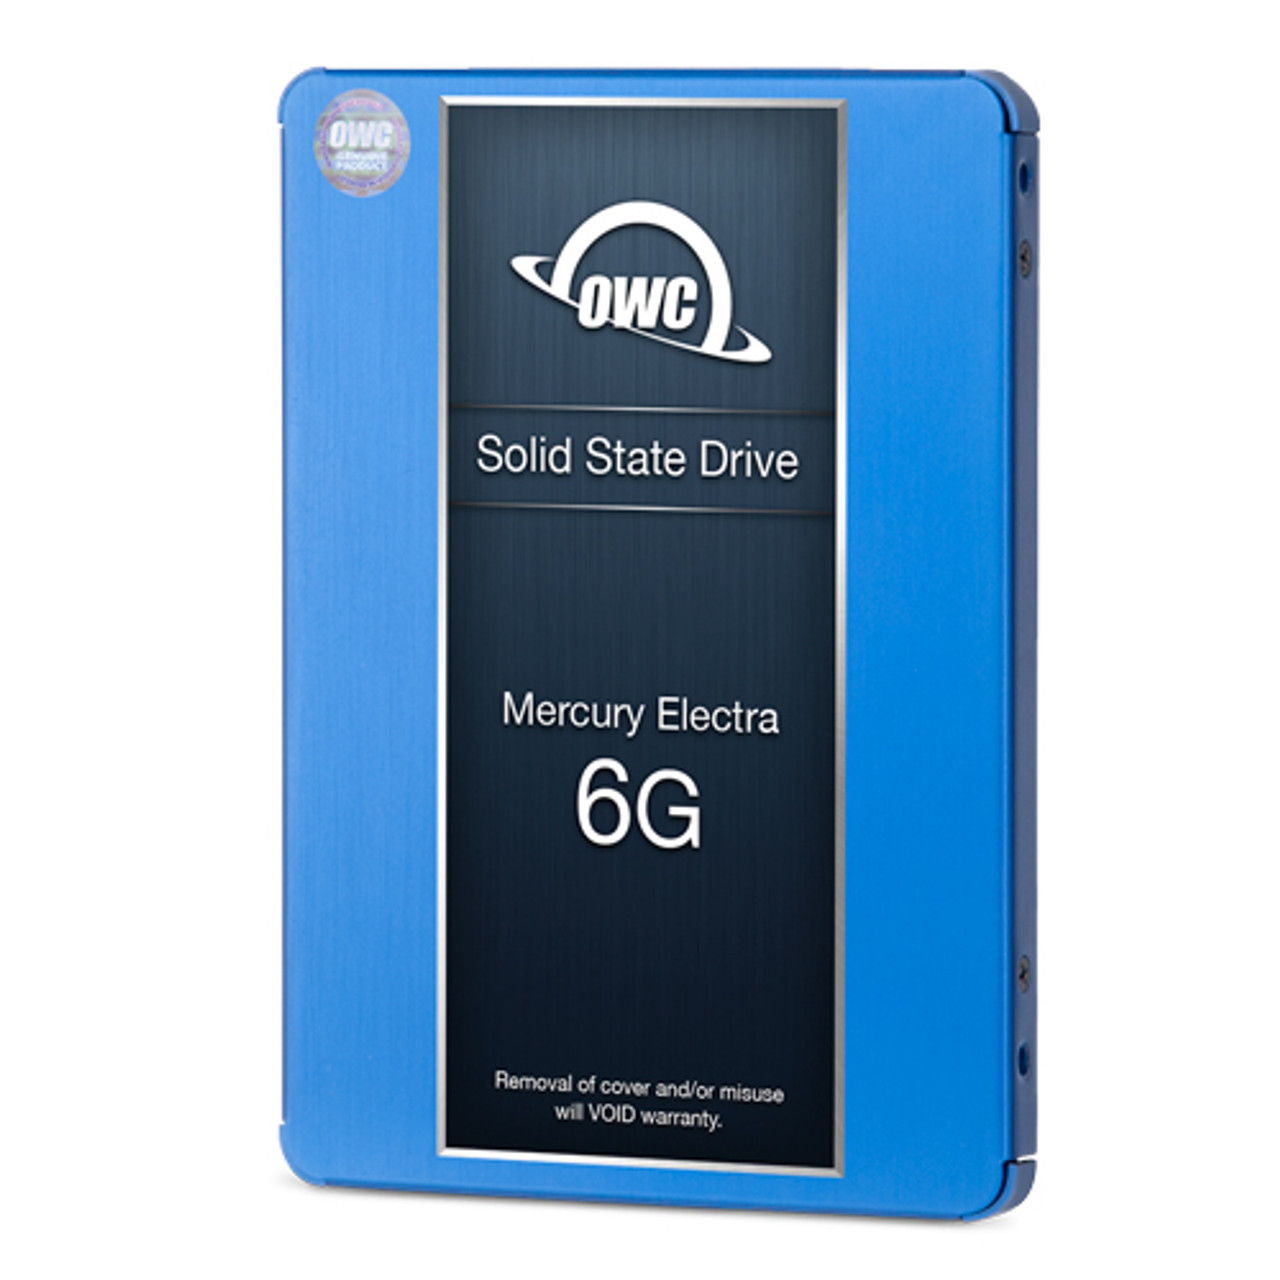 250GB OWC Mercury Electra 6G SSD - SSD Bay Add-In Kit for 2011 27-inch iMacs